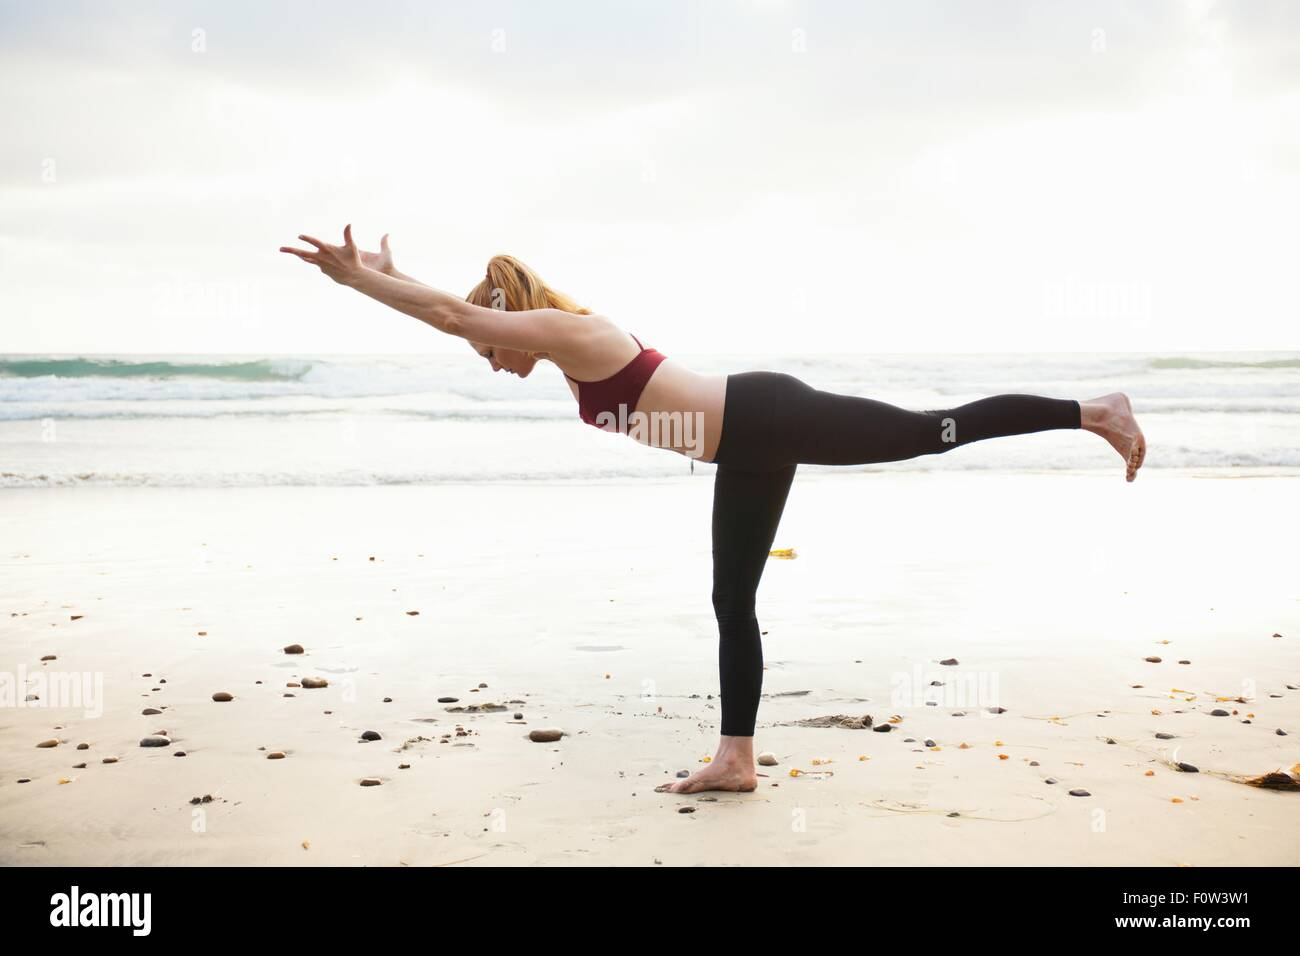 Mid adult woman practicing warrior yoga pose on beach - Stock Image